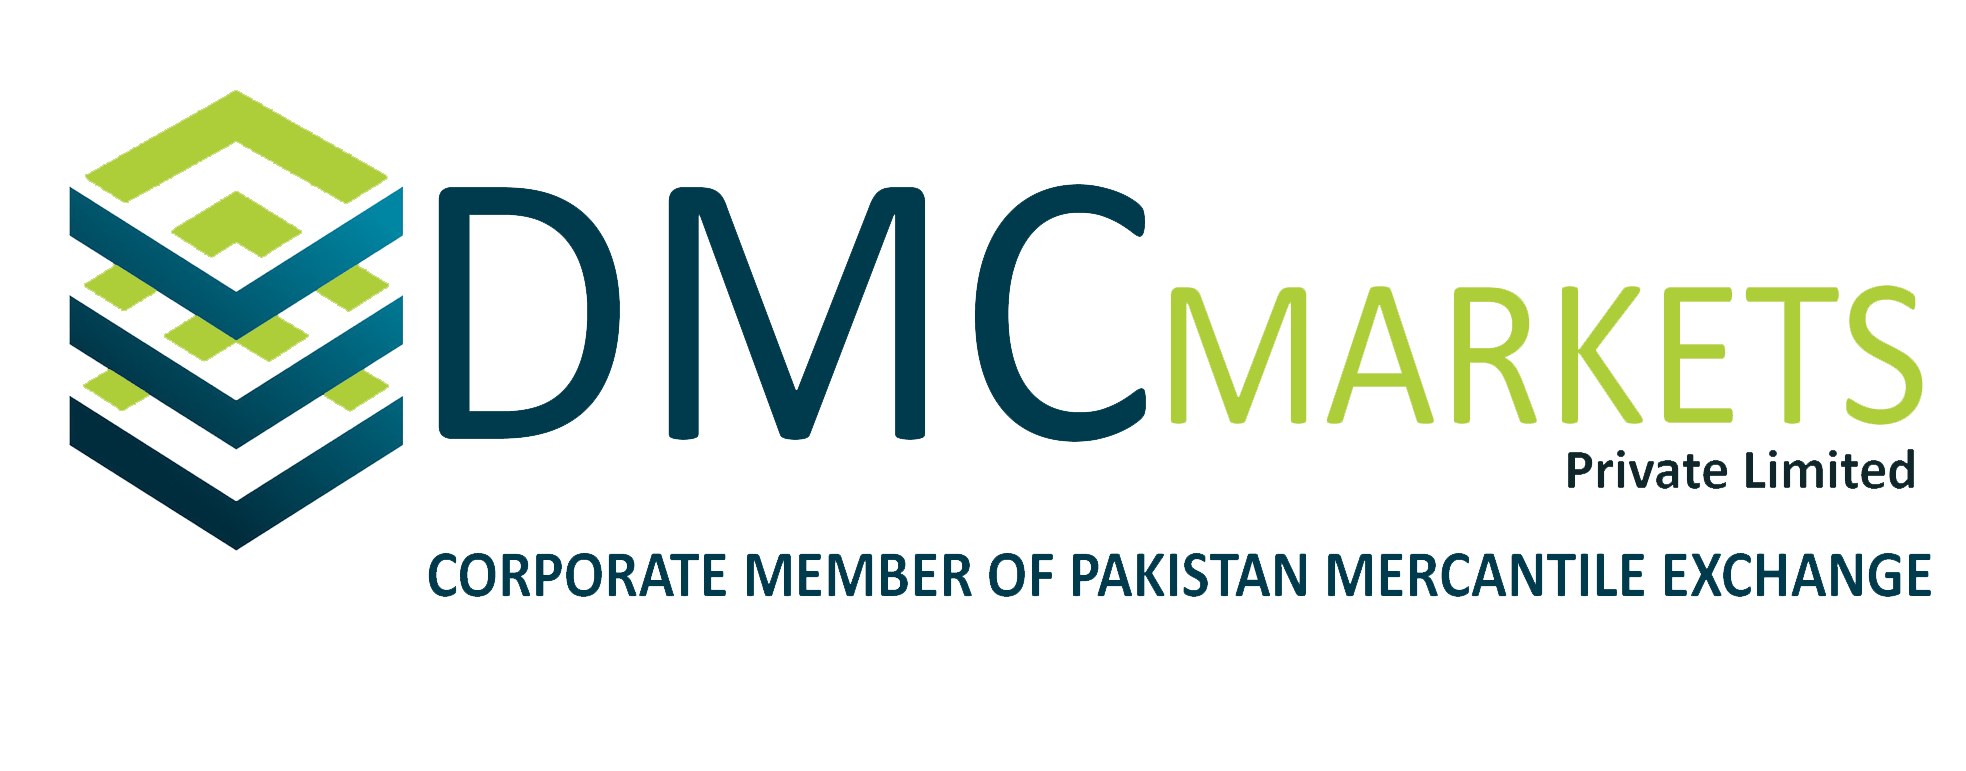 http://www.pakpositions.com/company/dmc-markets-pvt-ltd